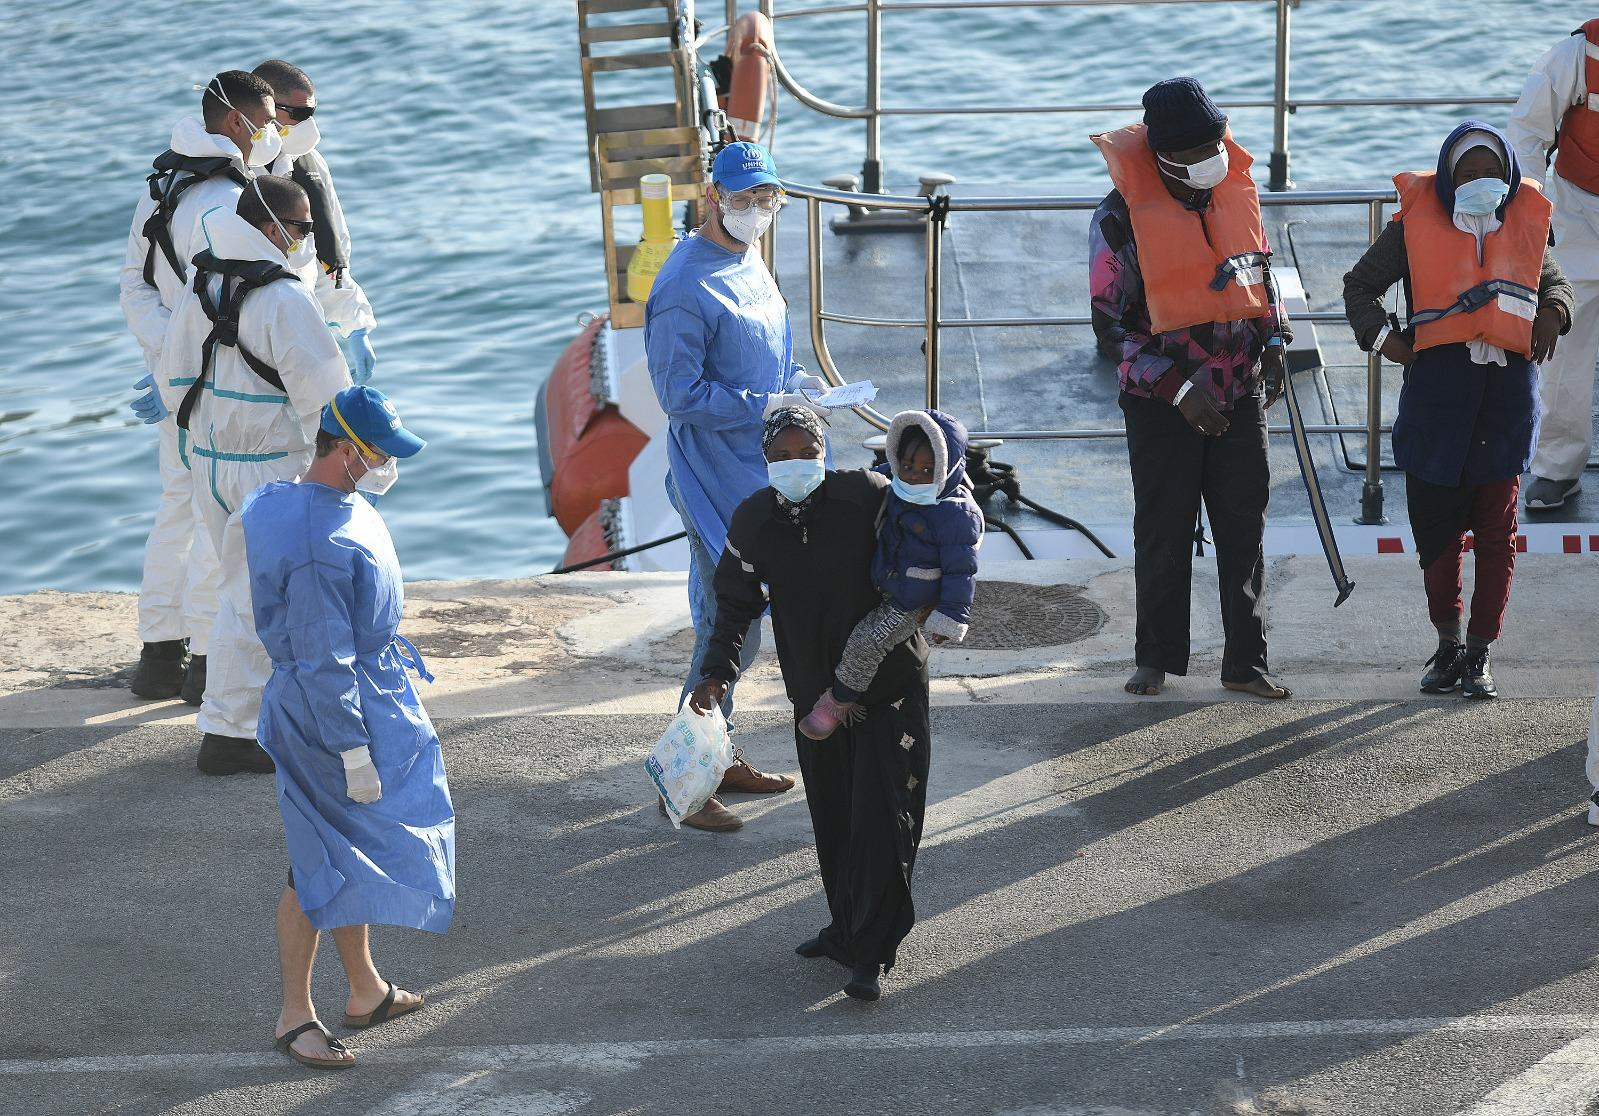 Malta has stopped disembarking migrants since it closed its ports, citing coronvirus. However, a small group were taken to the island last week. Photo: Matthew Mirabelli